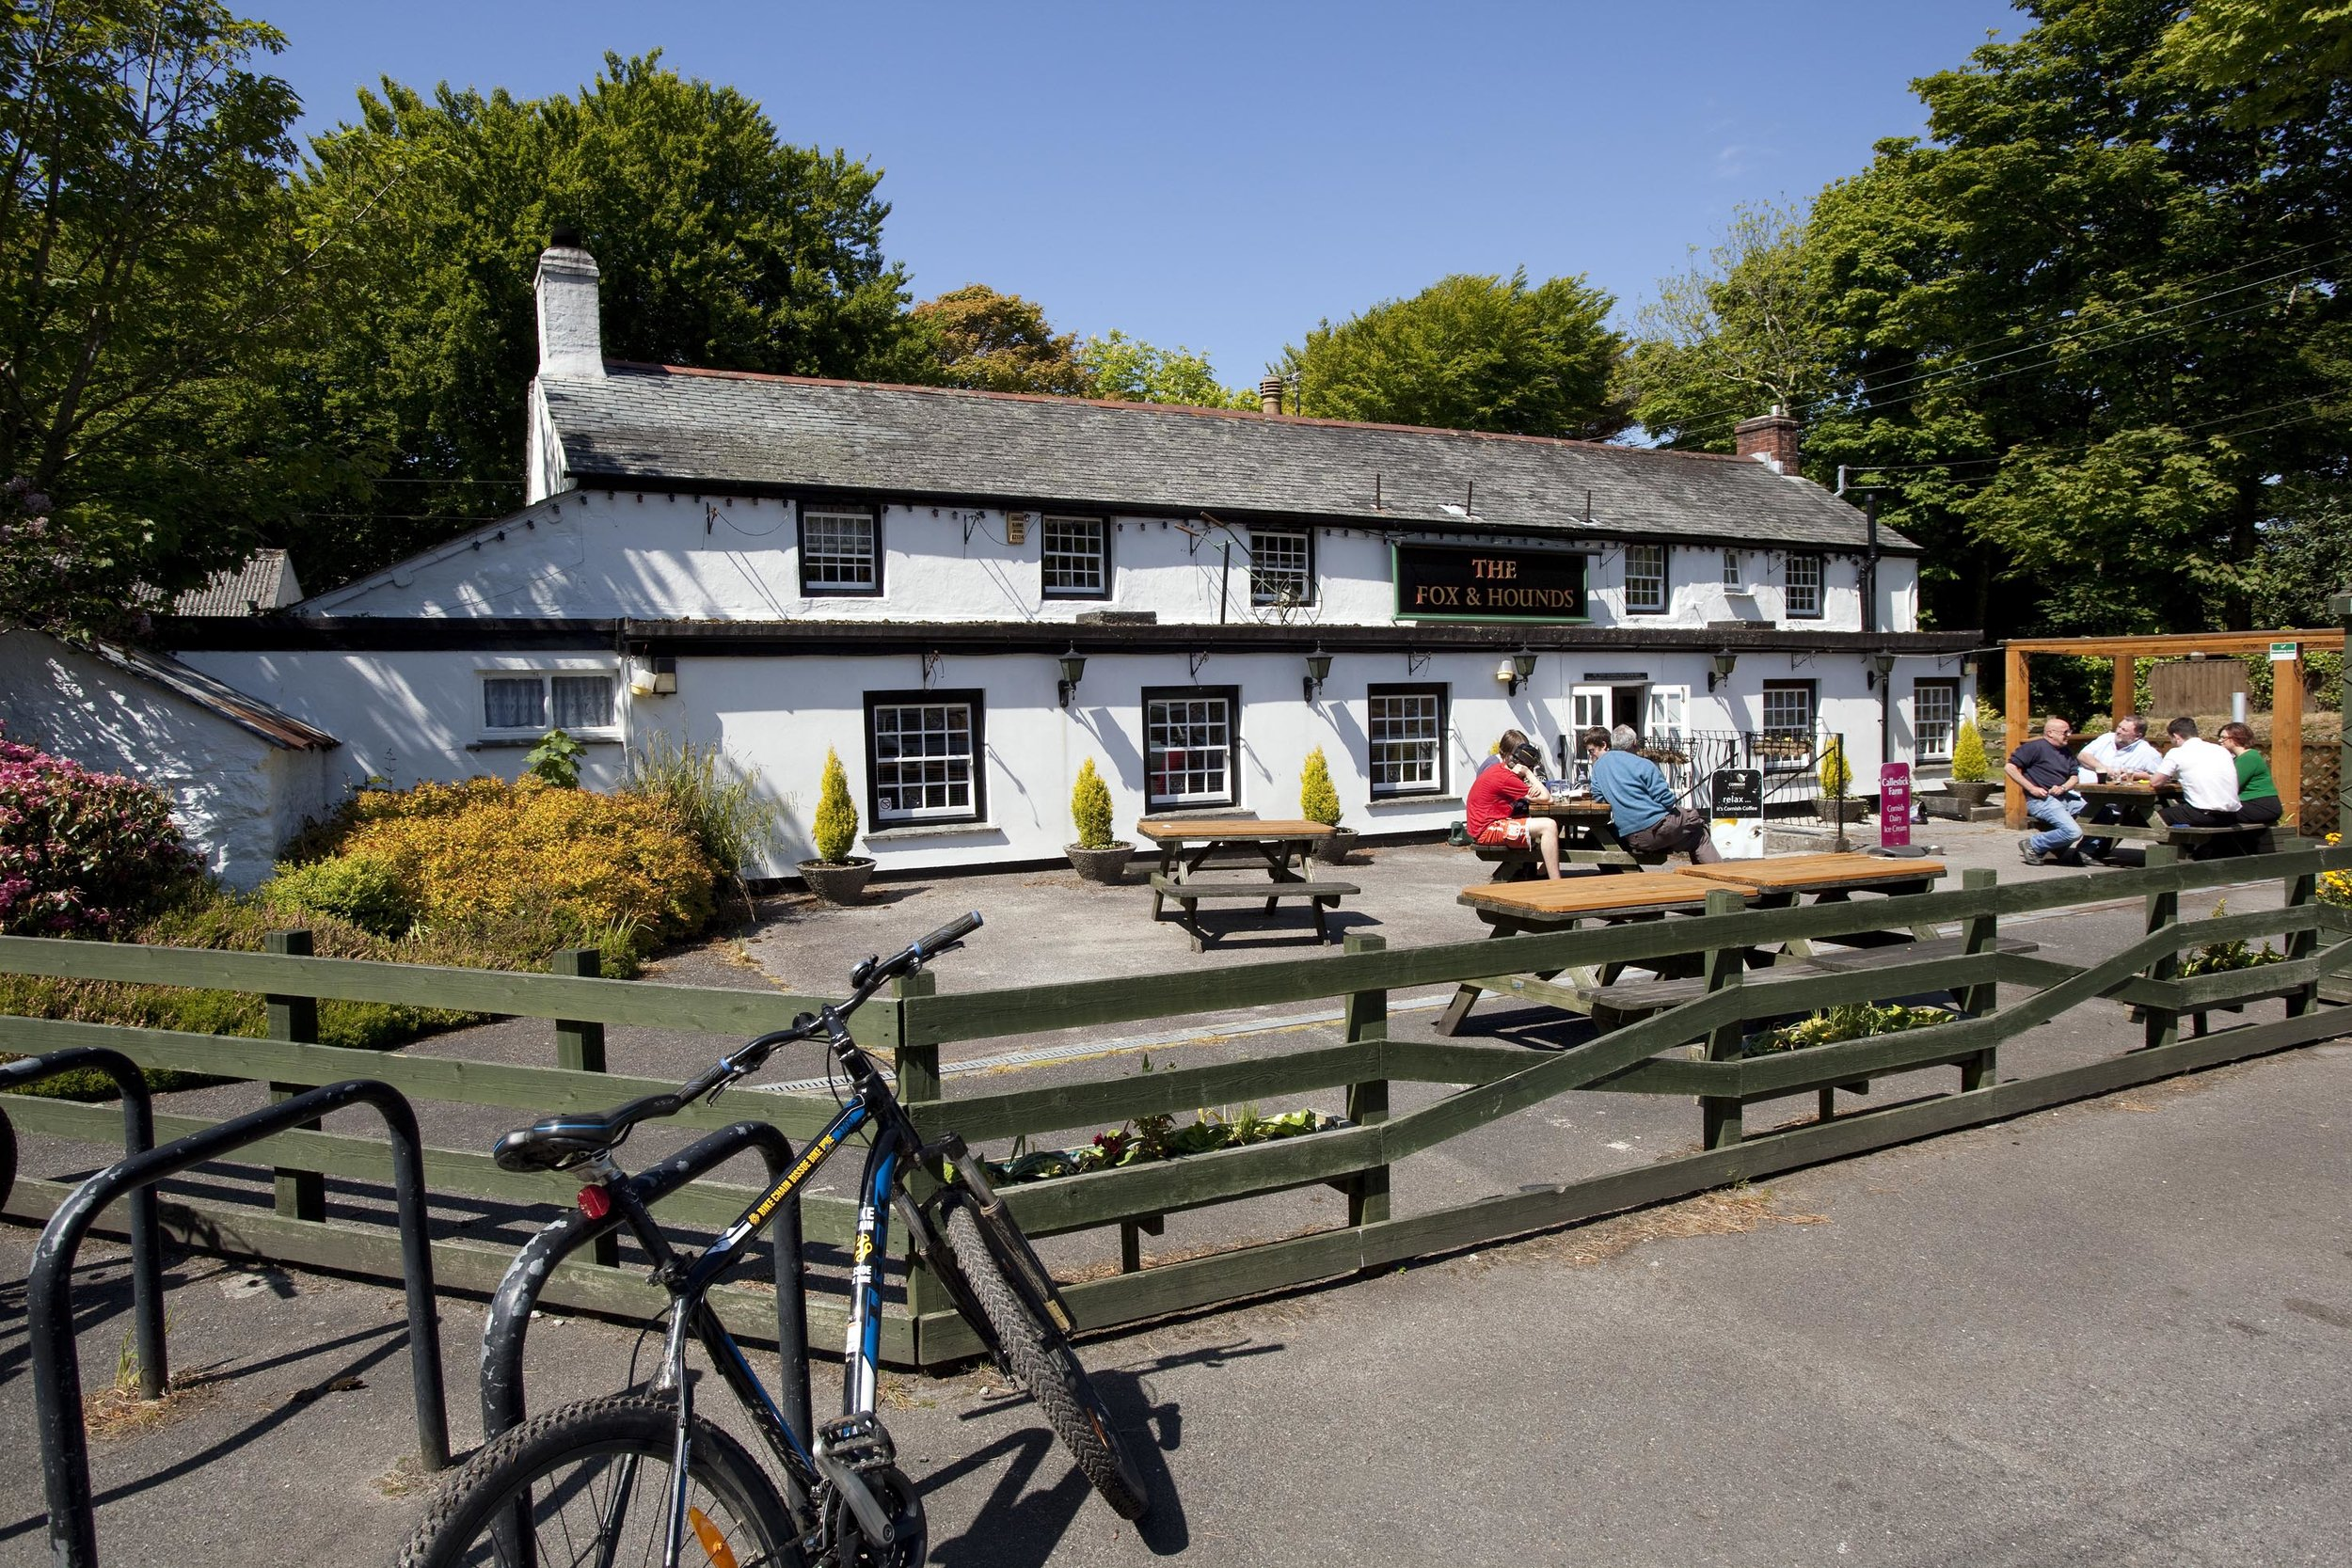 The Fox & Hounds, Scorrier - A picture-postcard pub less than a mile from the Brewery as the crow flies. Conveniently situated on the cycle trail, with a garden and a very large car park.